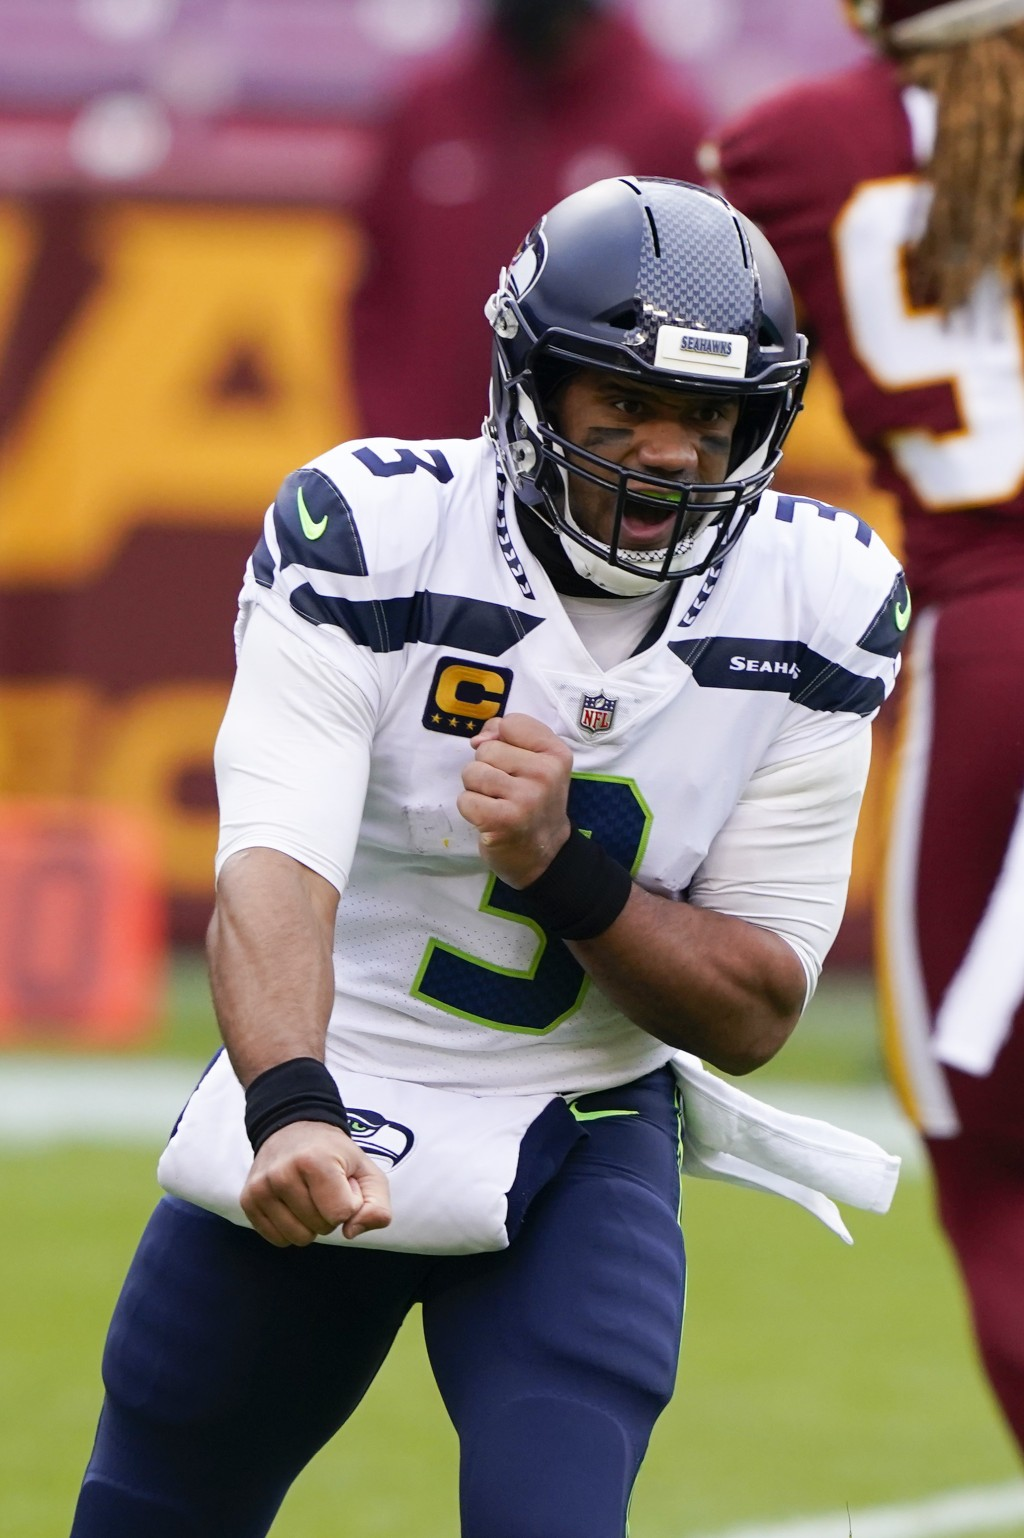 Seattle Seahawks quarterback Russell Wilson (3) celebrating his touchdown pass to tight end Jacob Hollister (86) during the first half of an NFL footb...